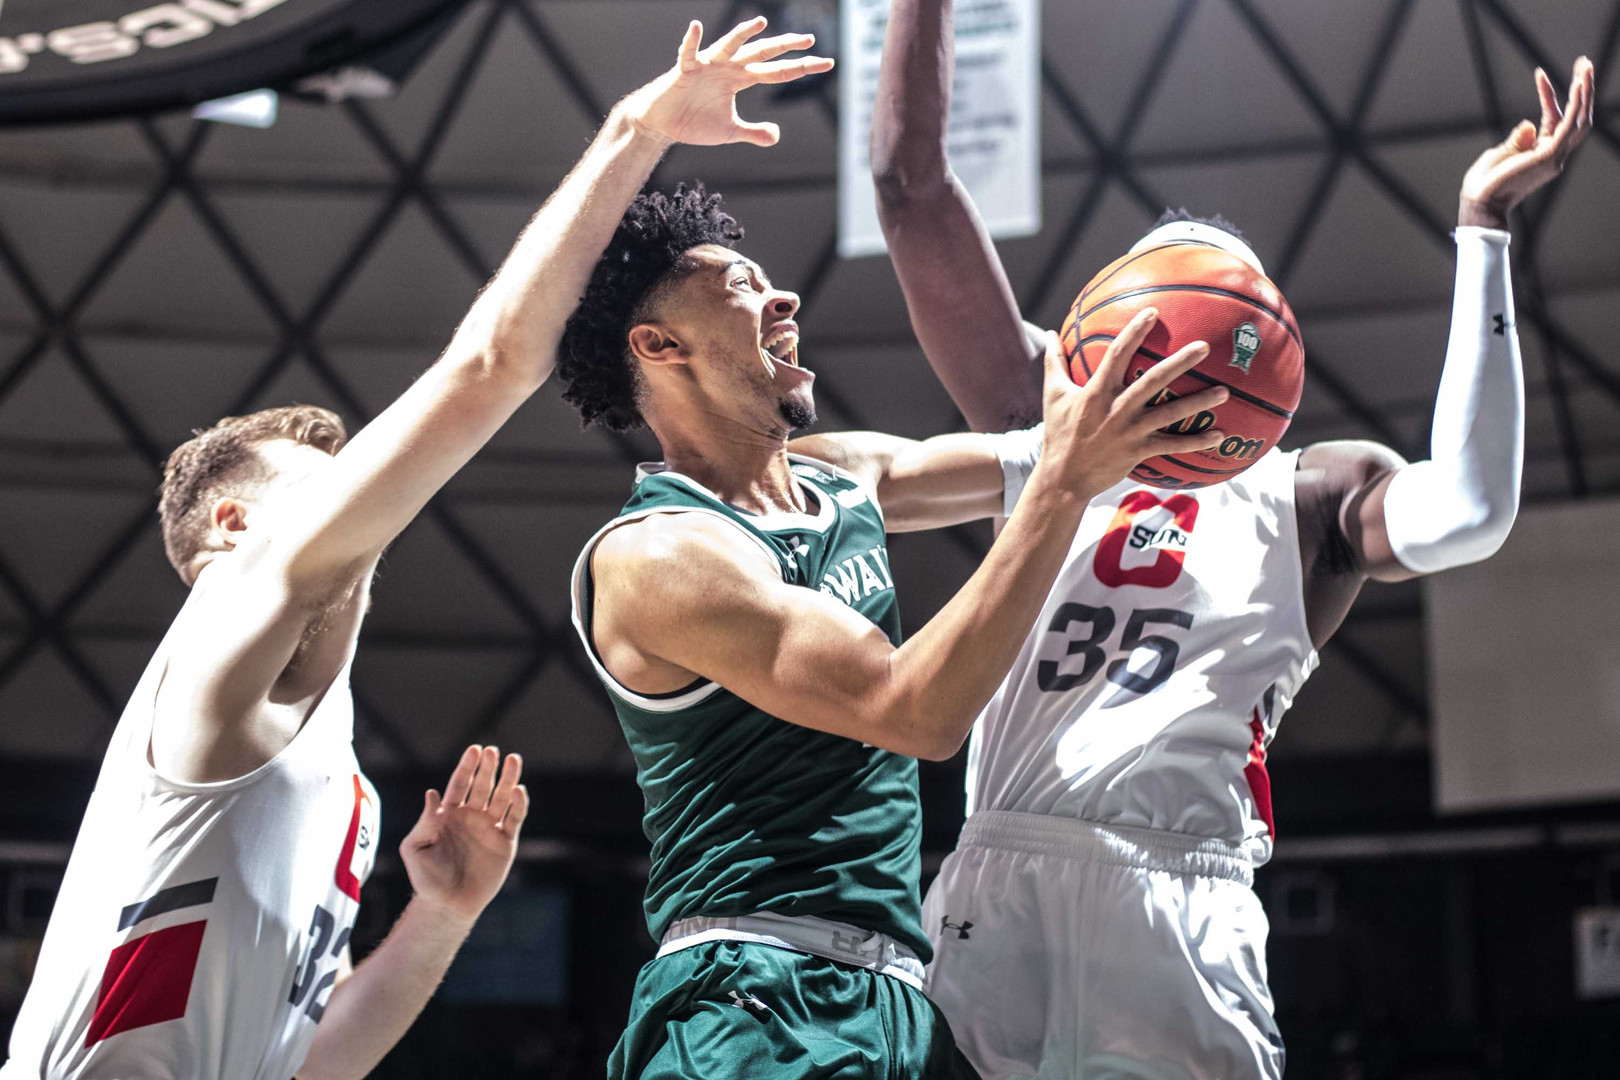 Hawaii's freshman Justin Webster attempts to score on a layup against CSUN on February 1, 2020. Hawai'i overcame a 17 point deficit in the second half to beat Cal State University Northridge in an 80-75 win in front of a crowd of 5,311 on Saturday night at the Stan Sheriff Center.